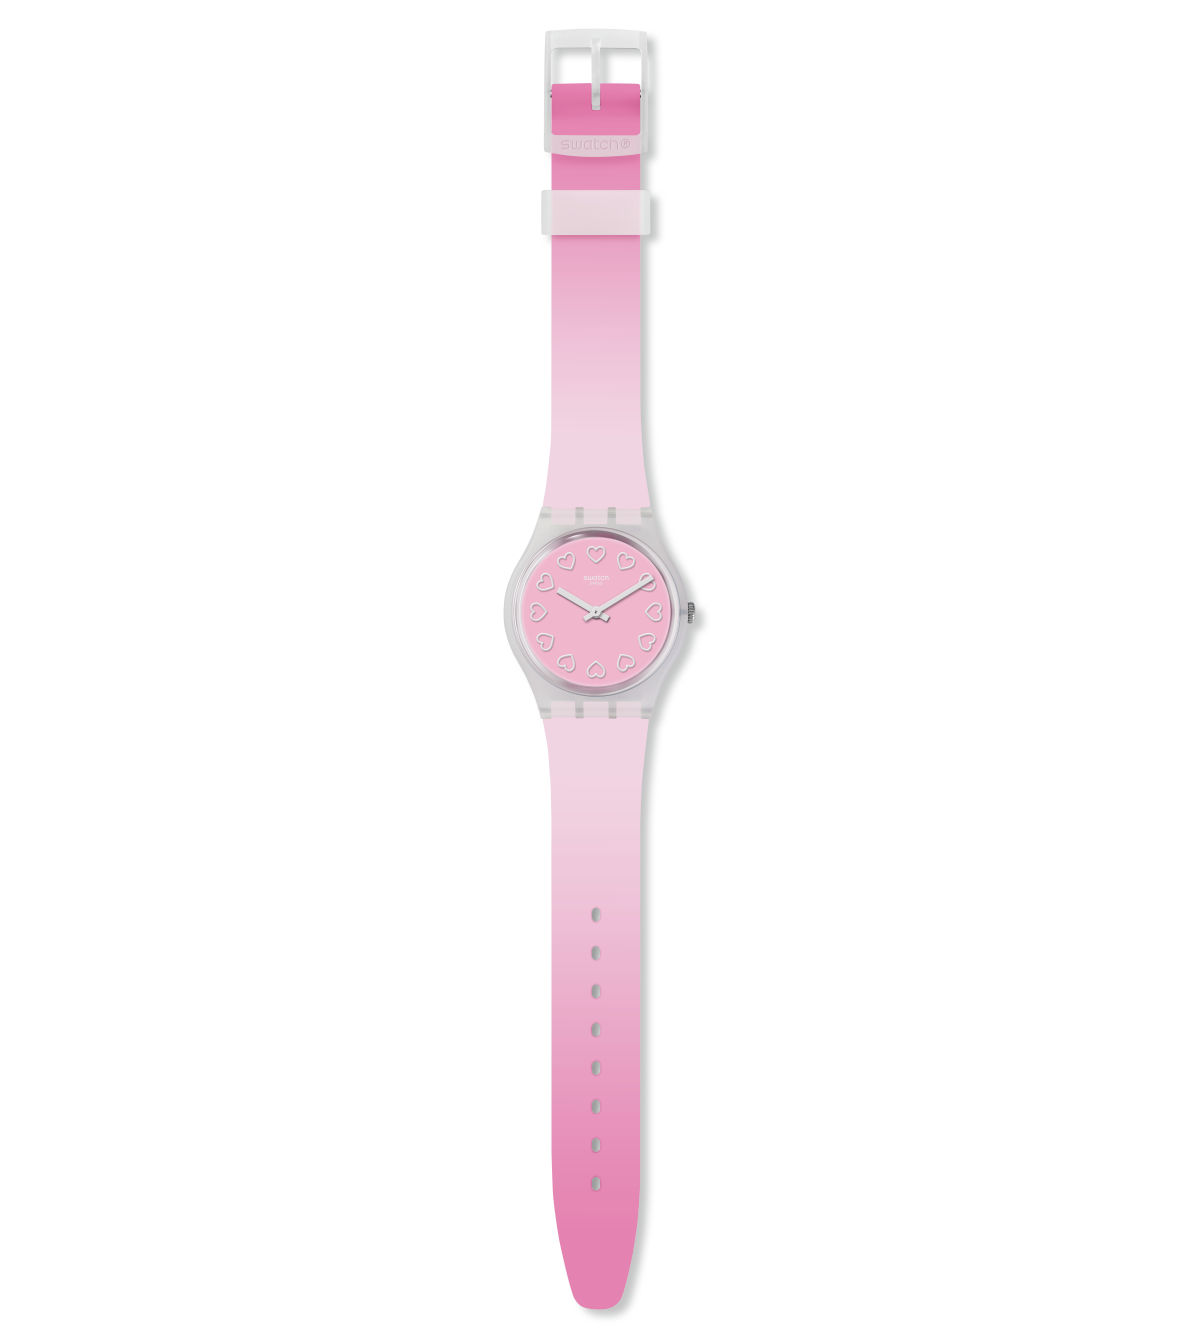 All Pink Swatch Watch